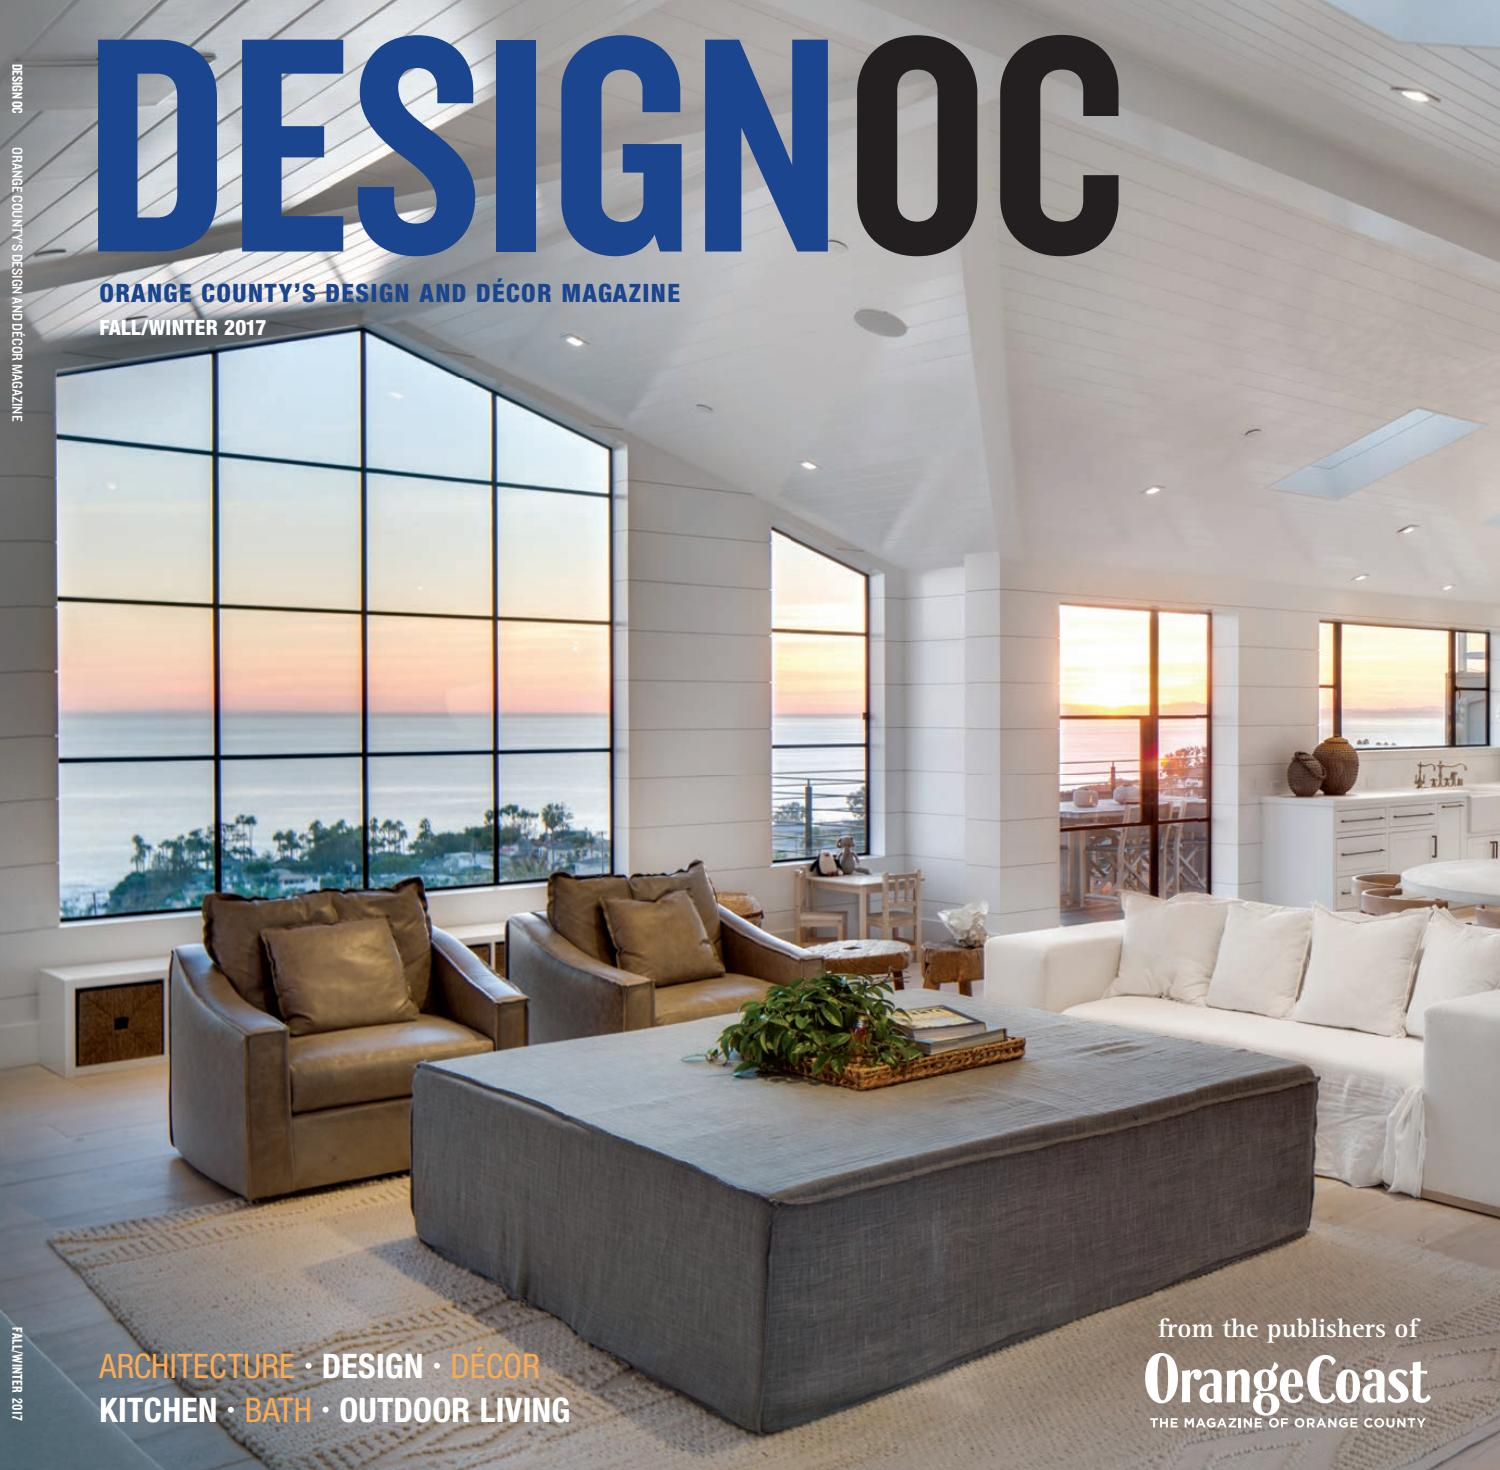 Kitchen Designer Orange County: Design OC Fall/Winter 2017 By Orange Coast Magazine